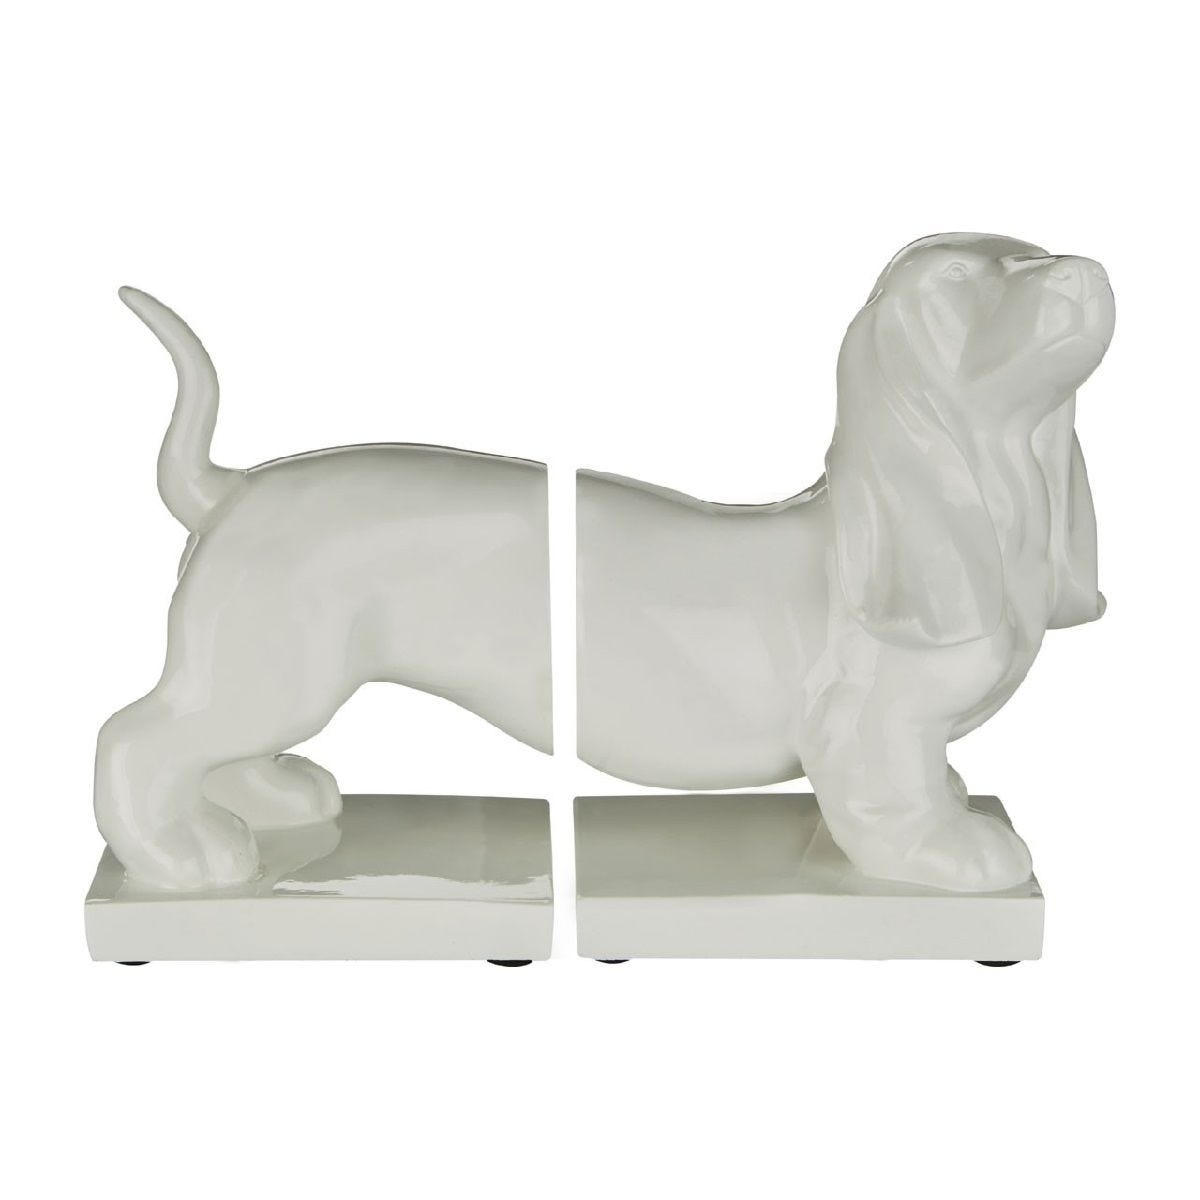 Premier Housewares Set of Dog Bookends - White High Gloss Finish Polyresin